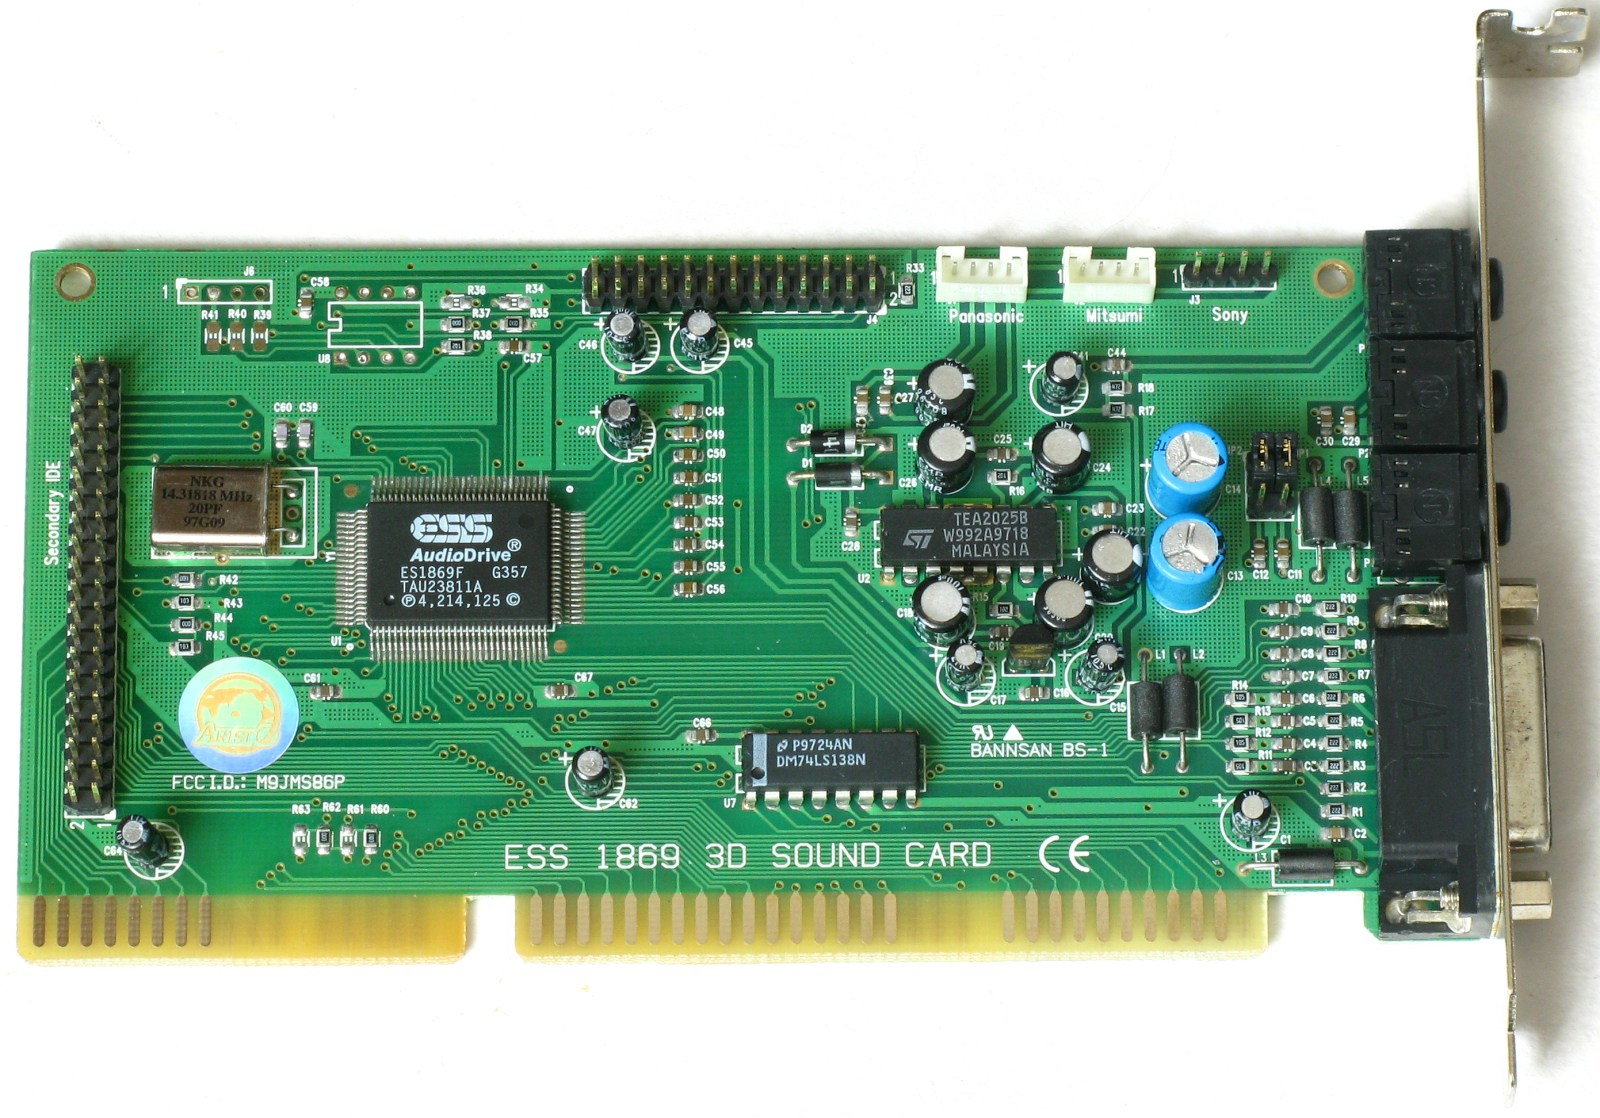 Ess es1938s sound card driver win7